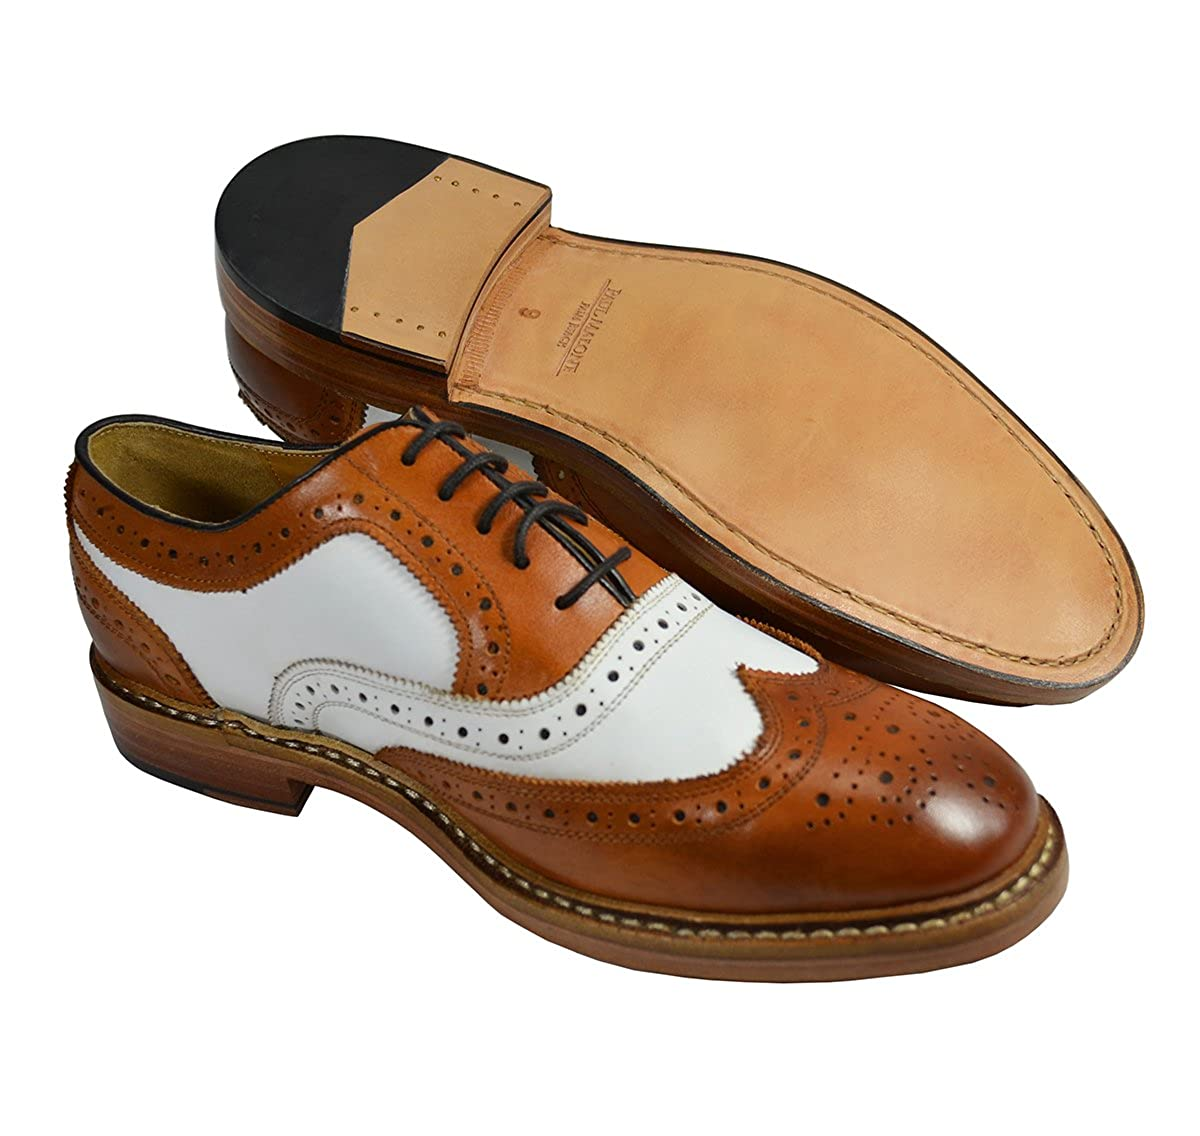 Mens Retro Shoes | Vintage Shoes & Boots Paul Malone Tan and White Wing Tip Spectators 100% Leather $157.97 AT vintagedancer.com